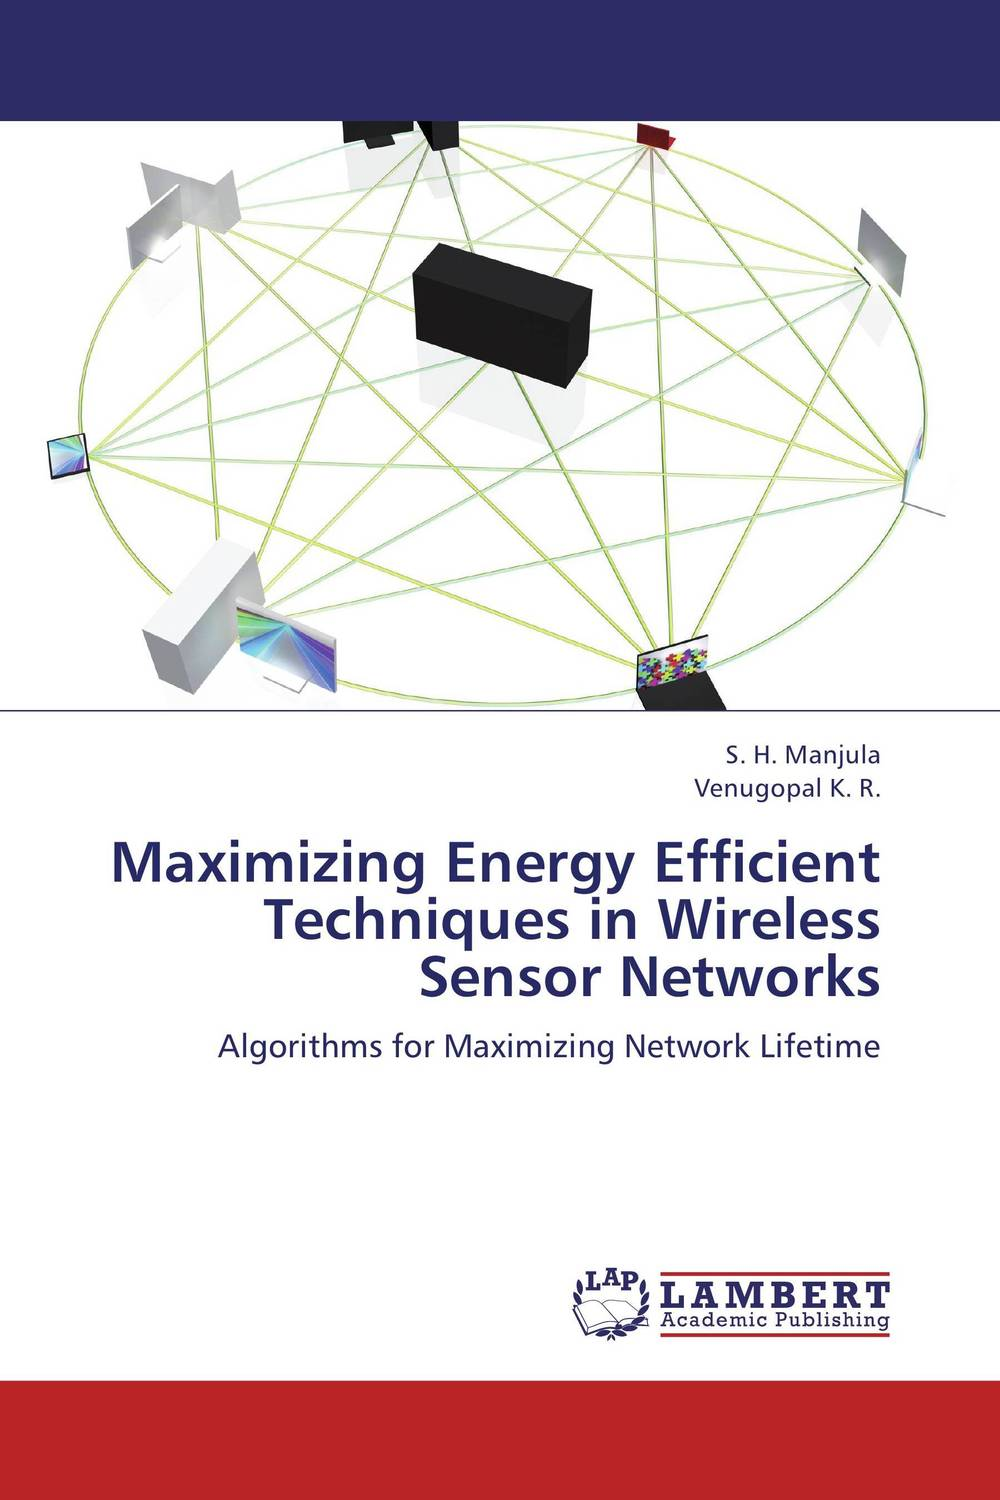 Maximizing Energy Efficient Techniques in Wireless Sensor Networks driven to distraction